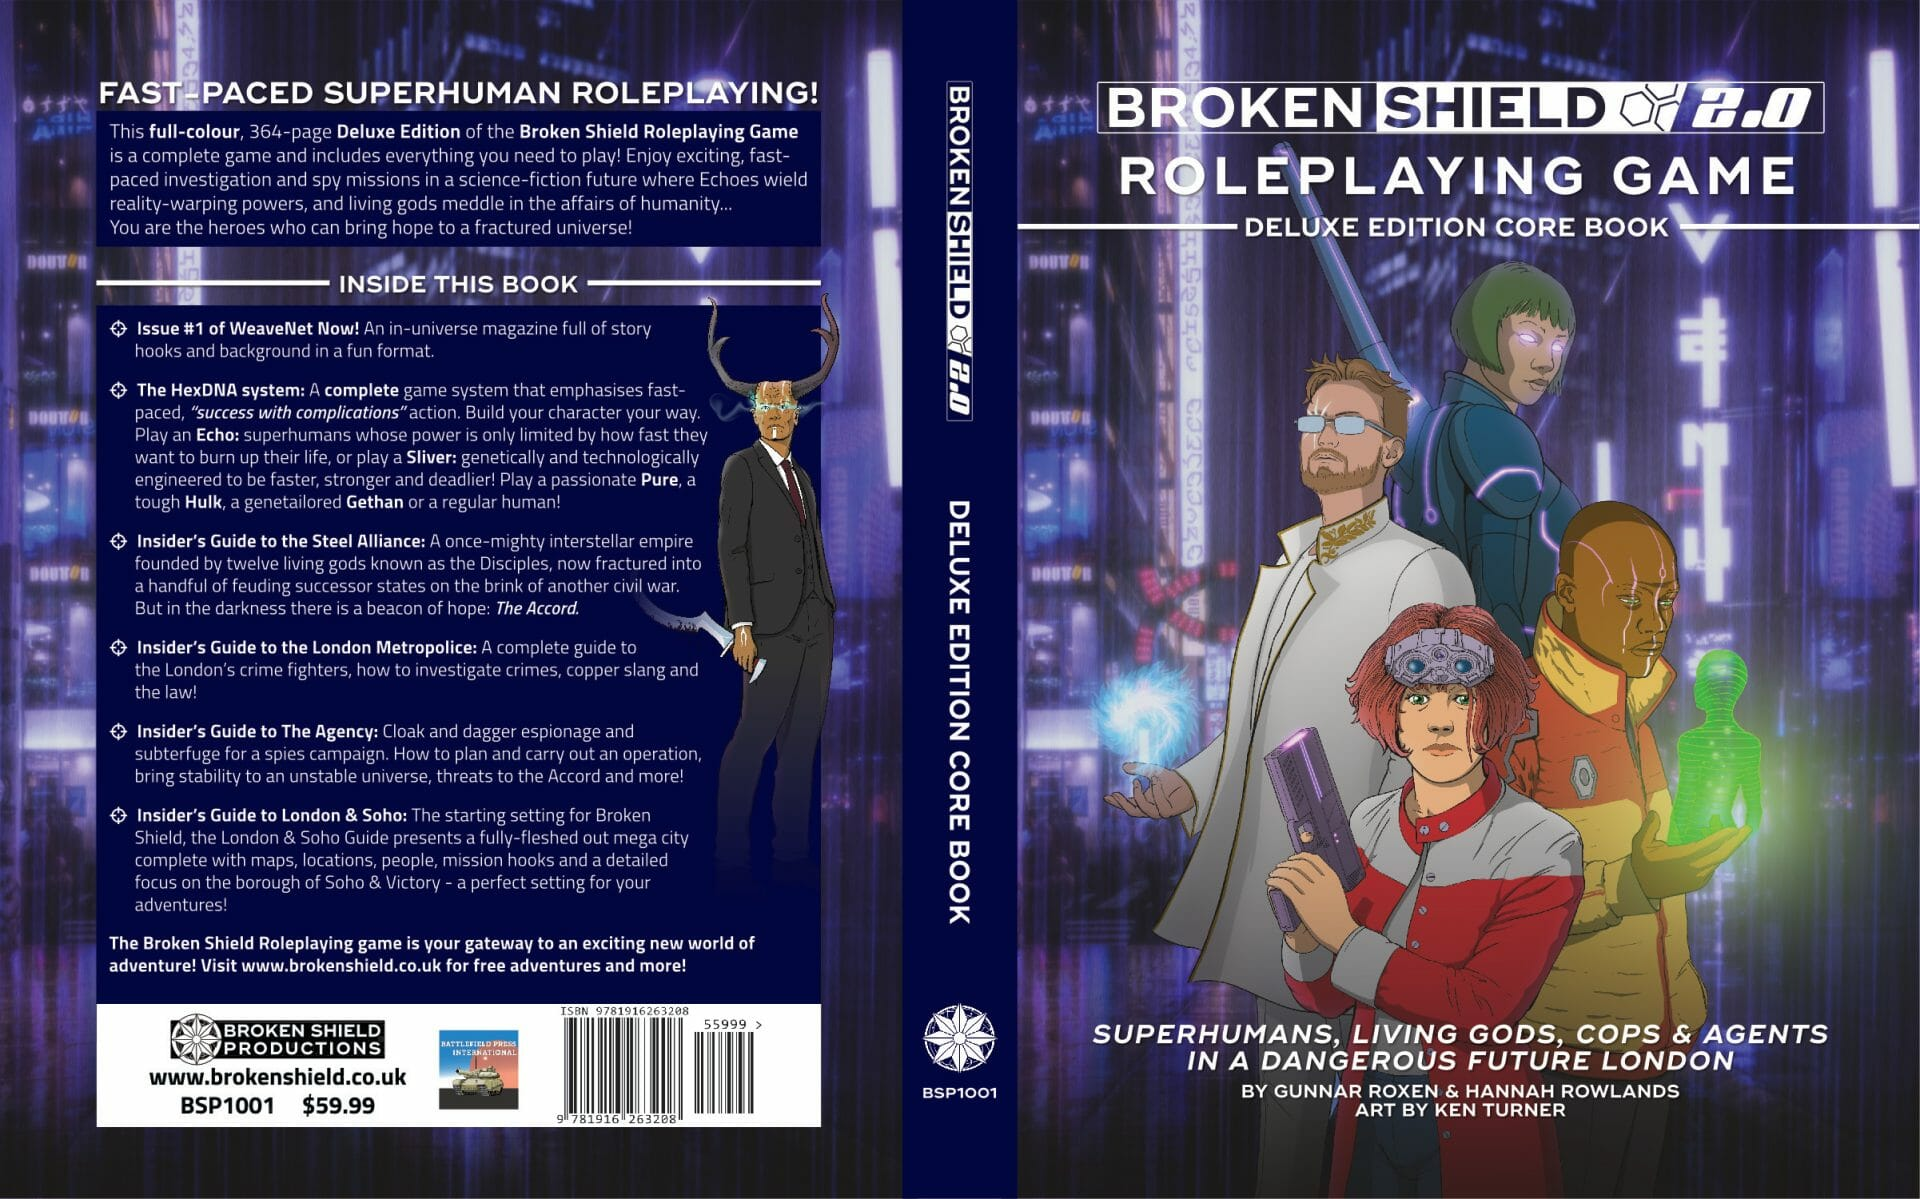 The Broken Shield Roleplaying Game: Deluxe Edition Core Book